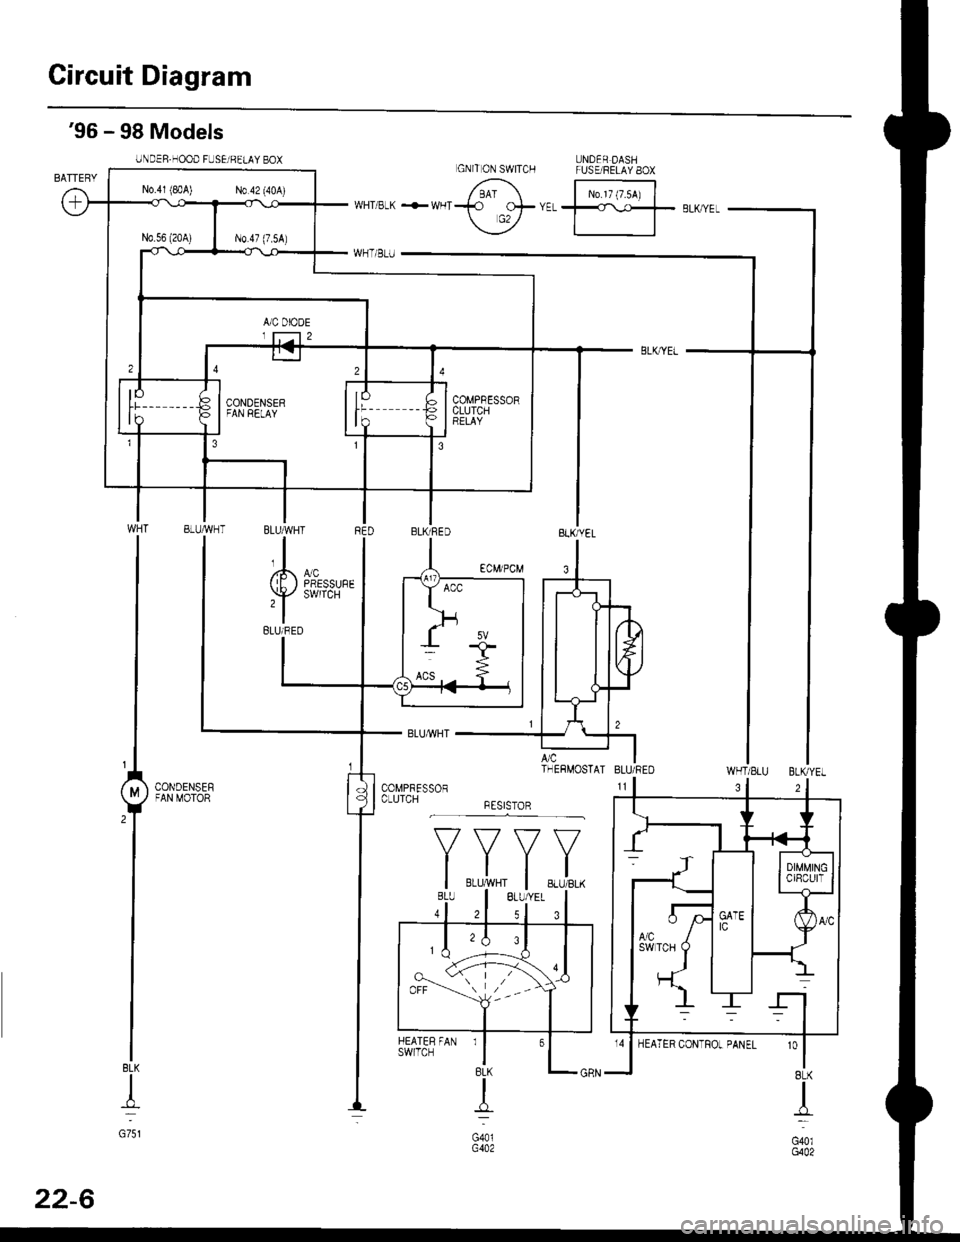 Honda Civic 1999 6g Workshop Manual Under Hood Fuse Relay Box Page 1430 Circuit Diagram Dashfuse 8ox